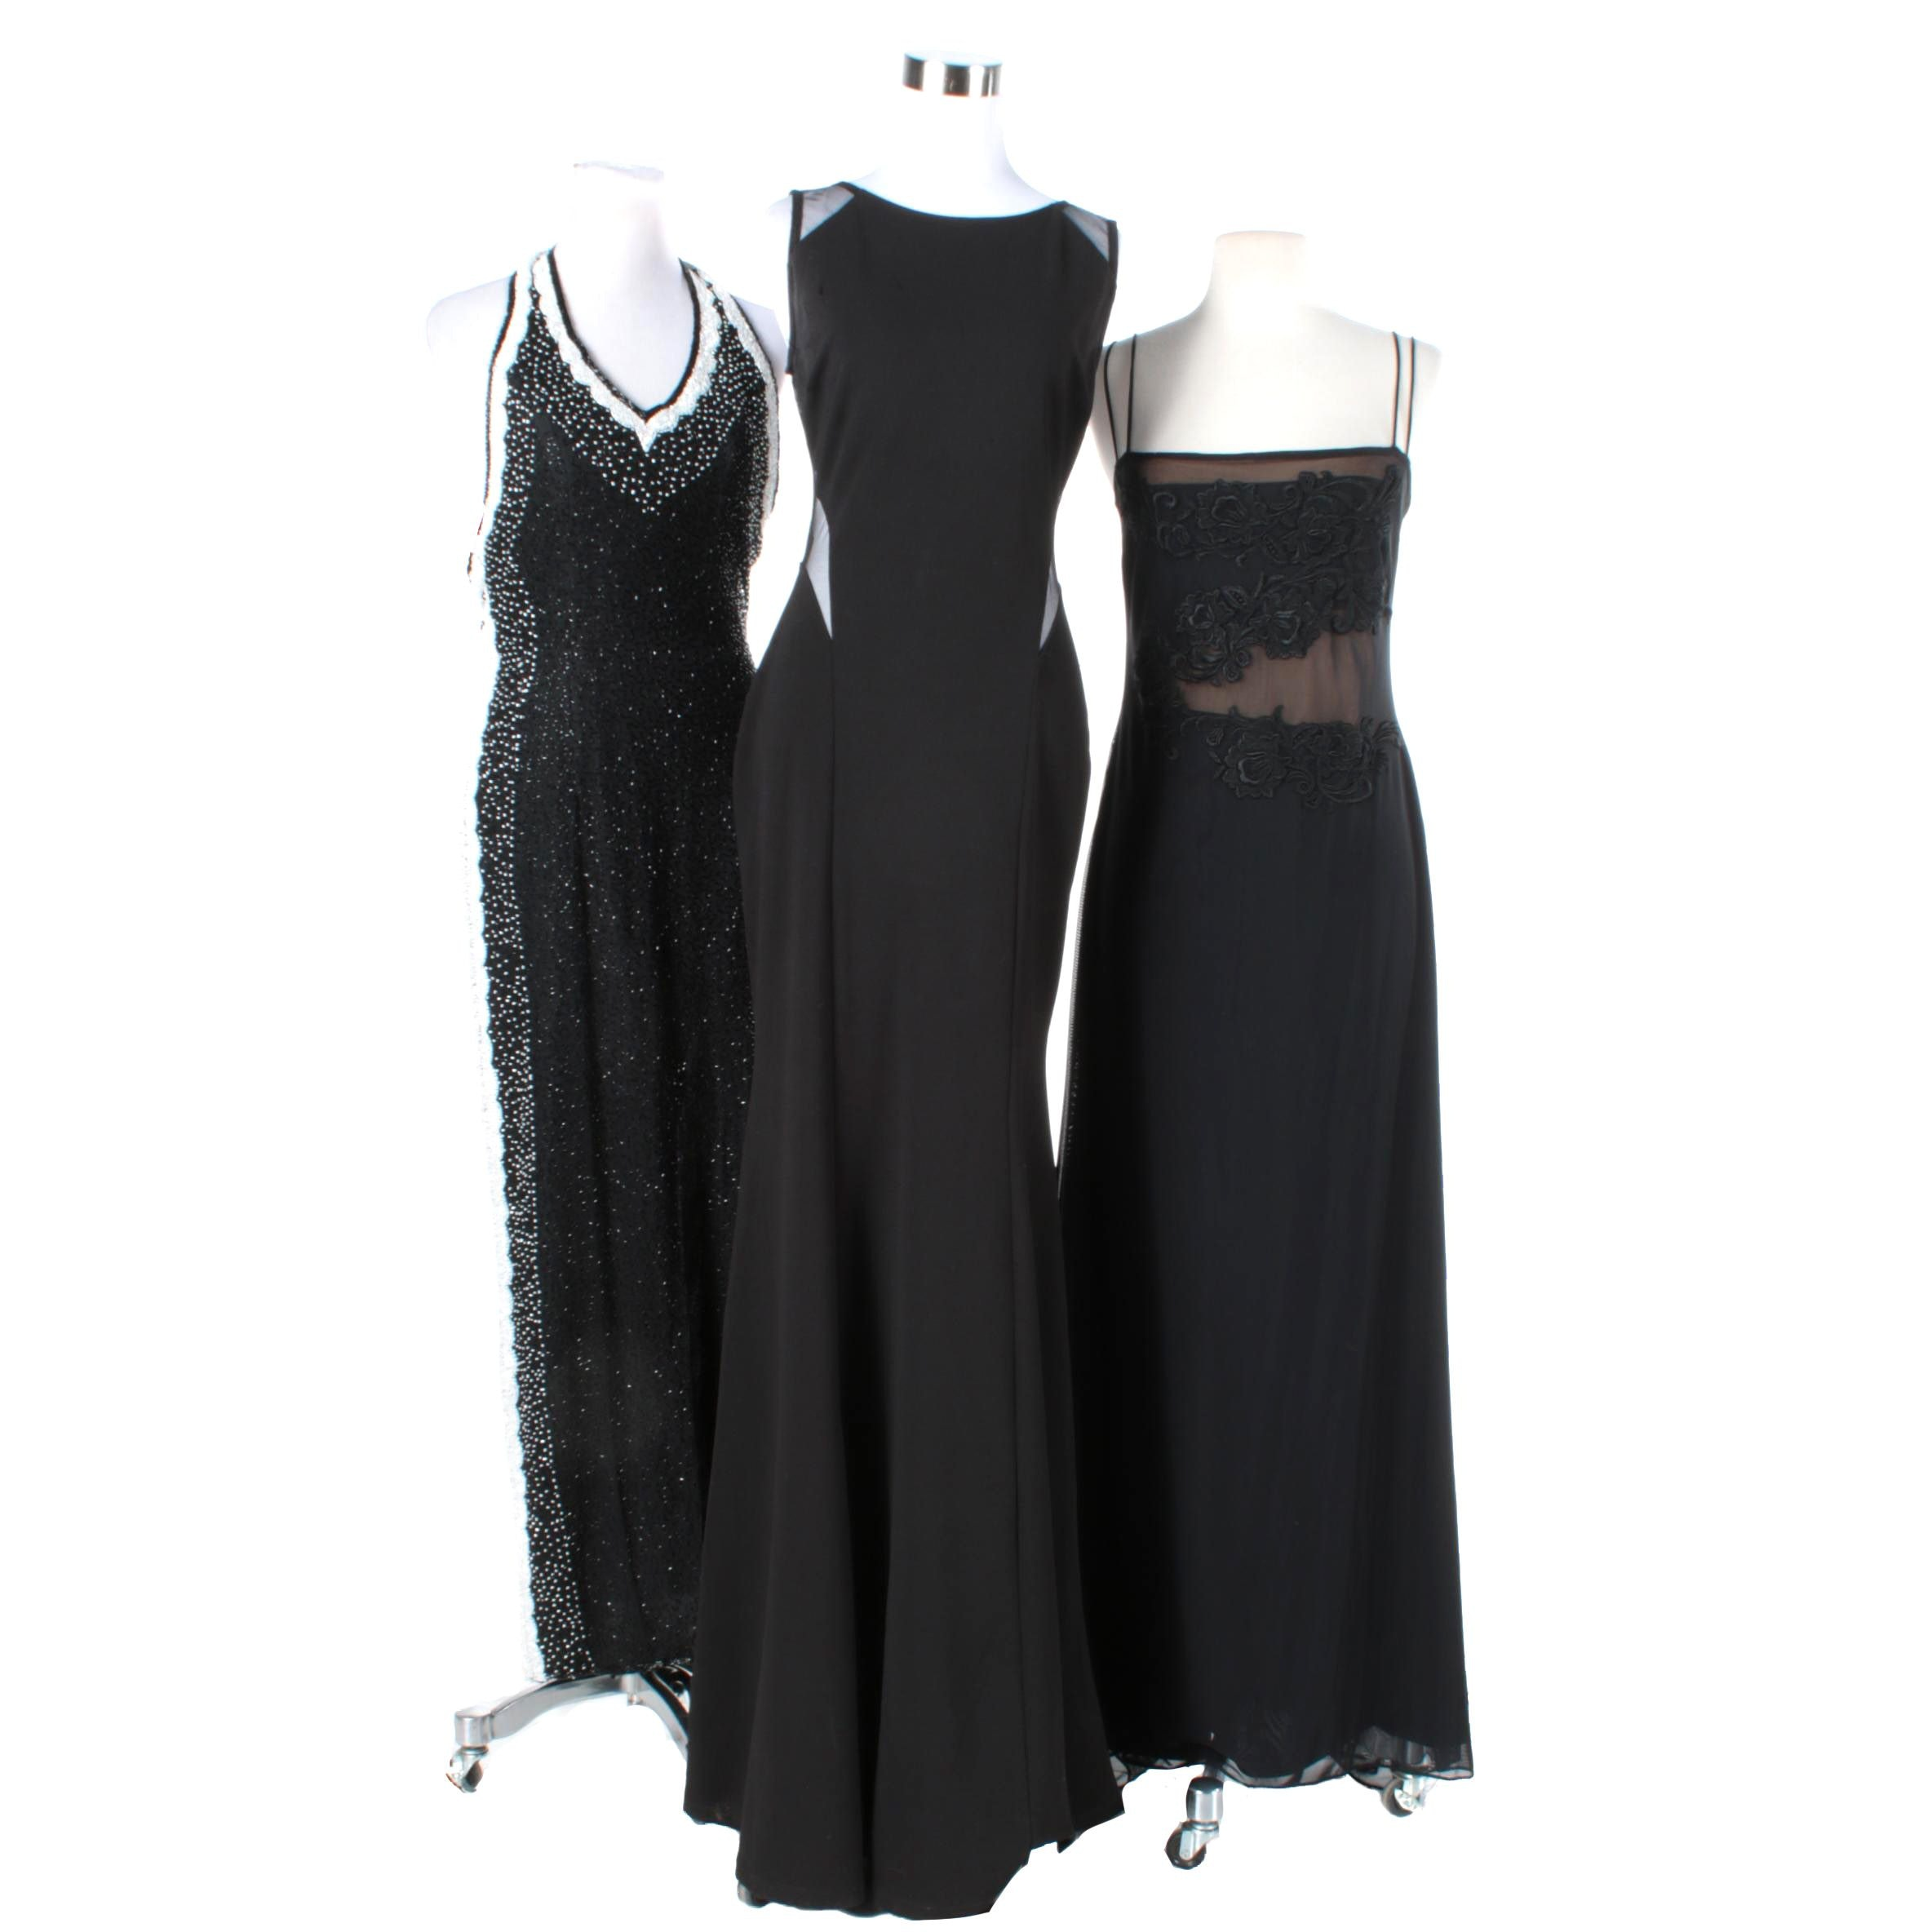 Women's Evening Gowns Including Windsor and Caché